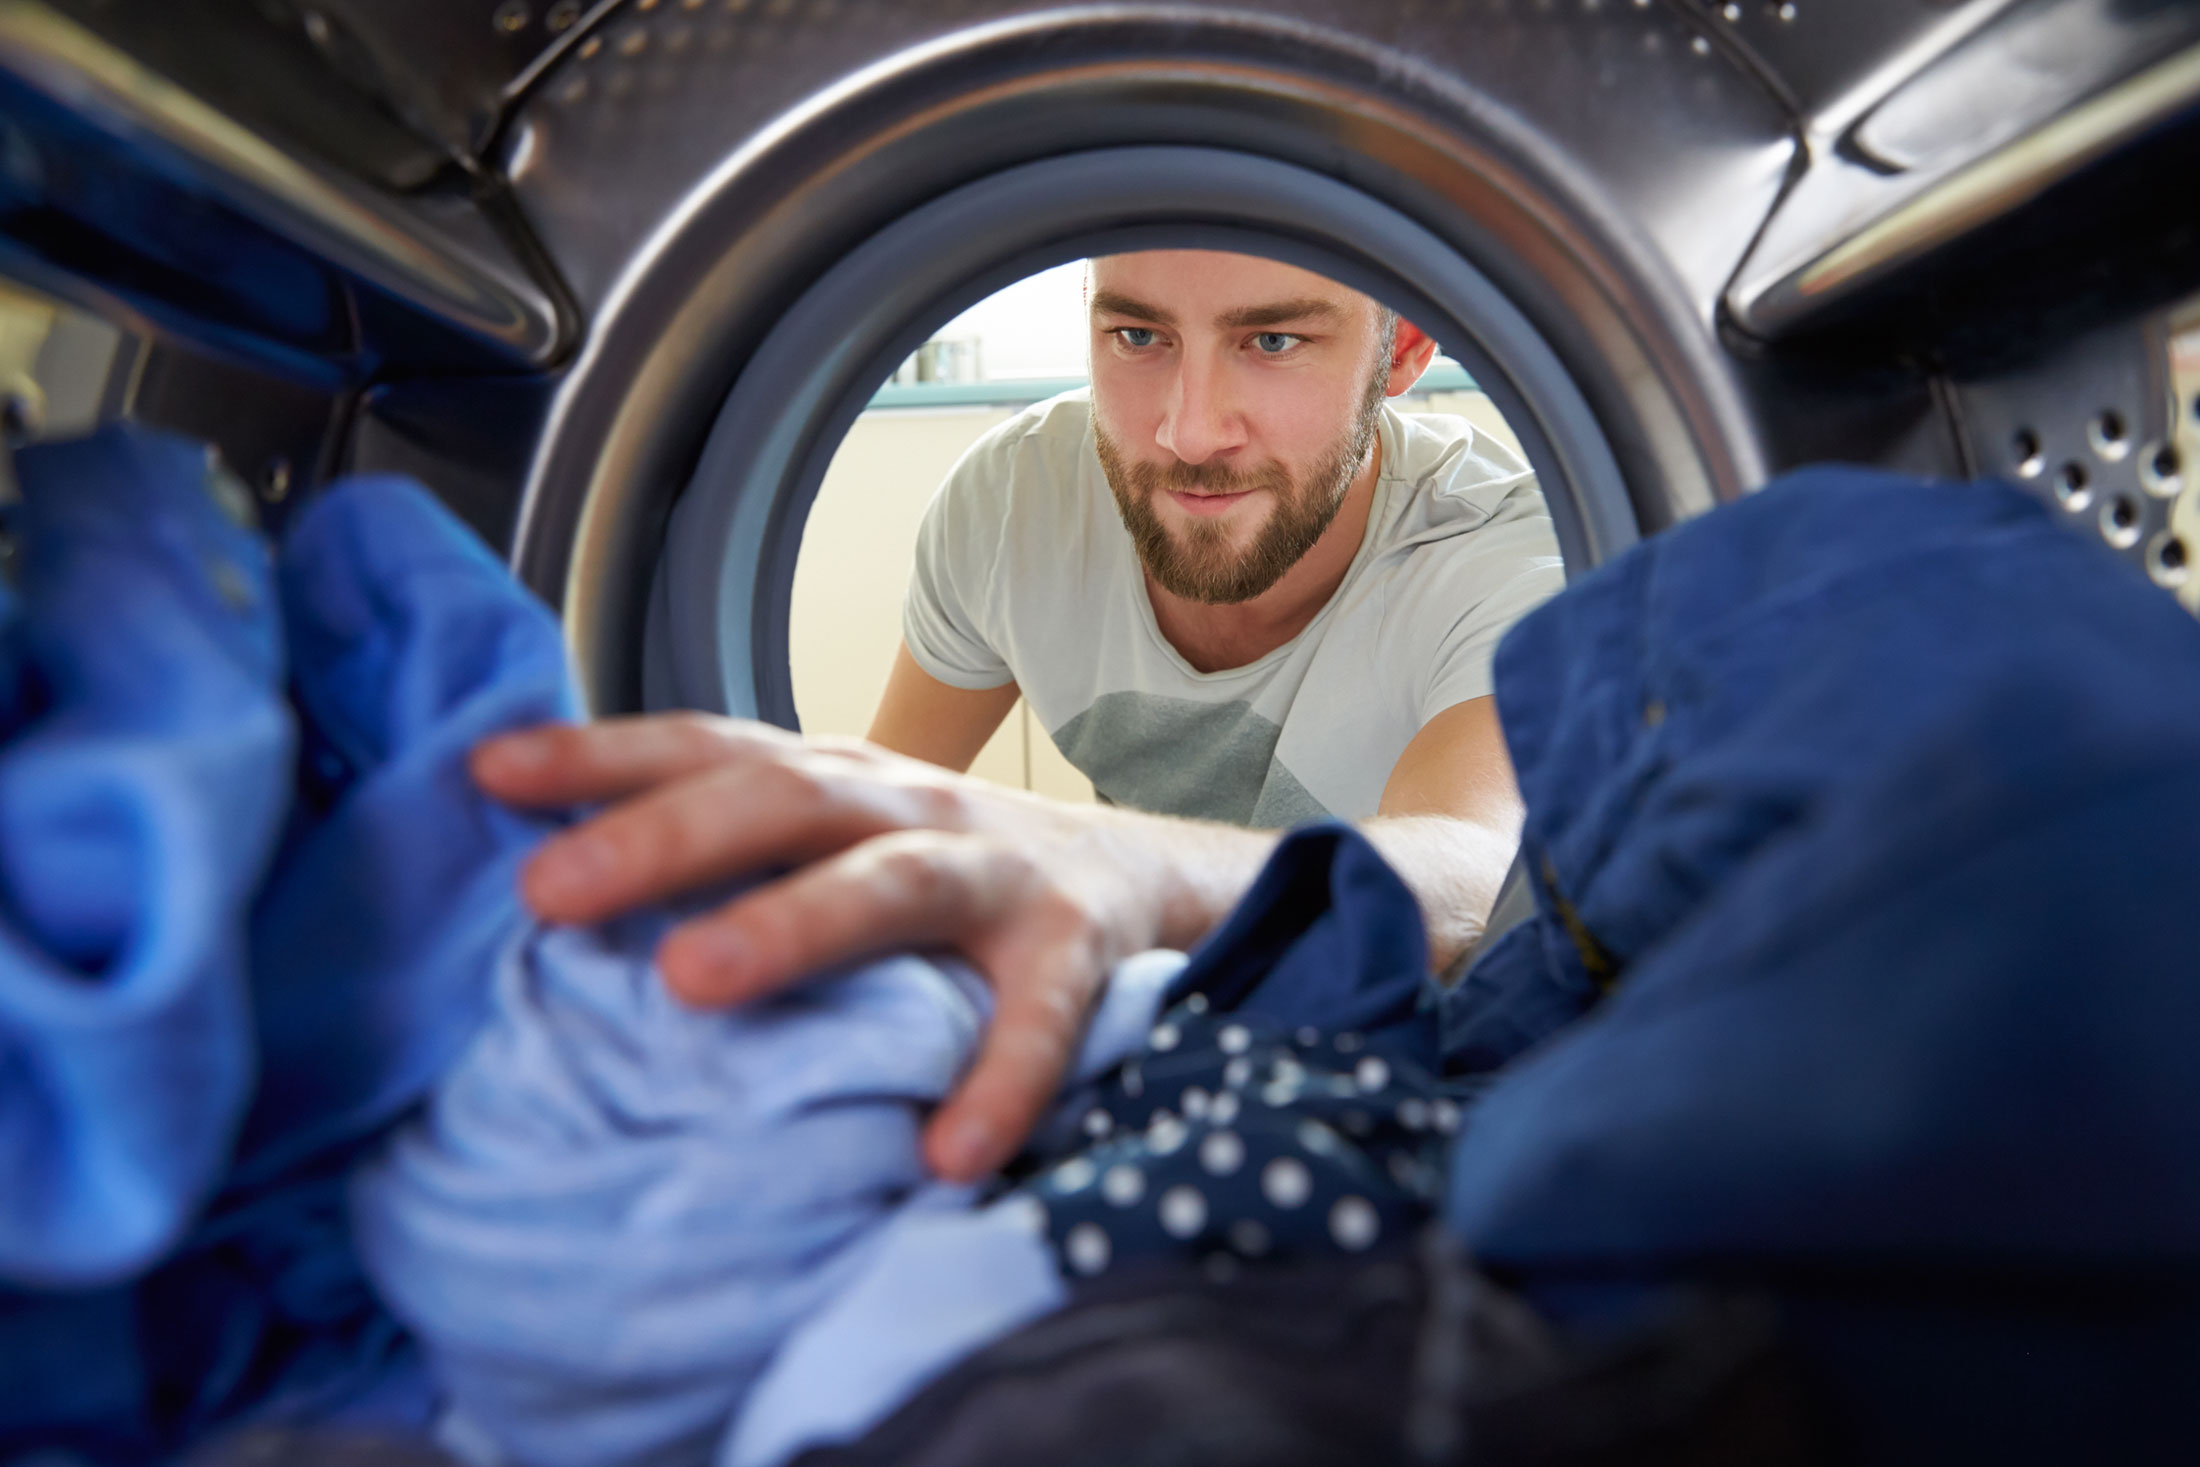 Laundry detergent water-soluble applications